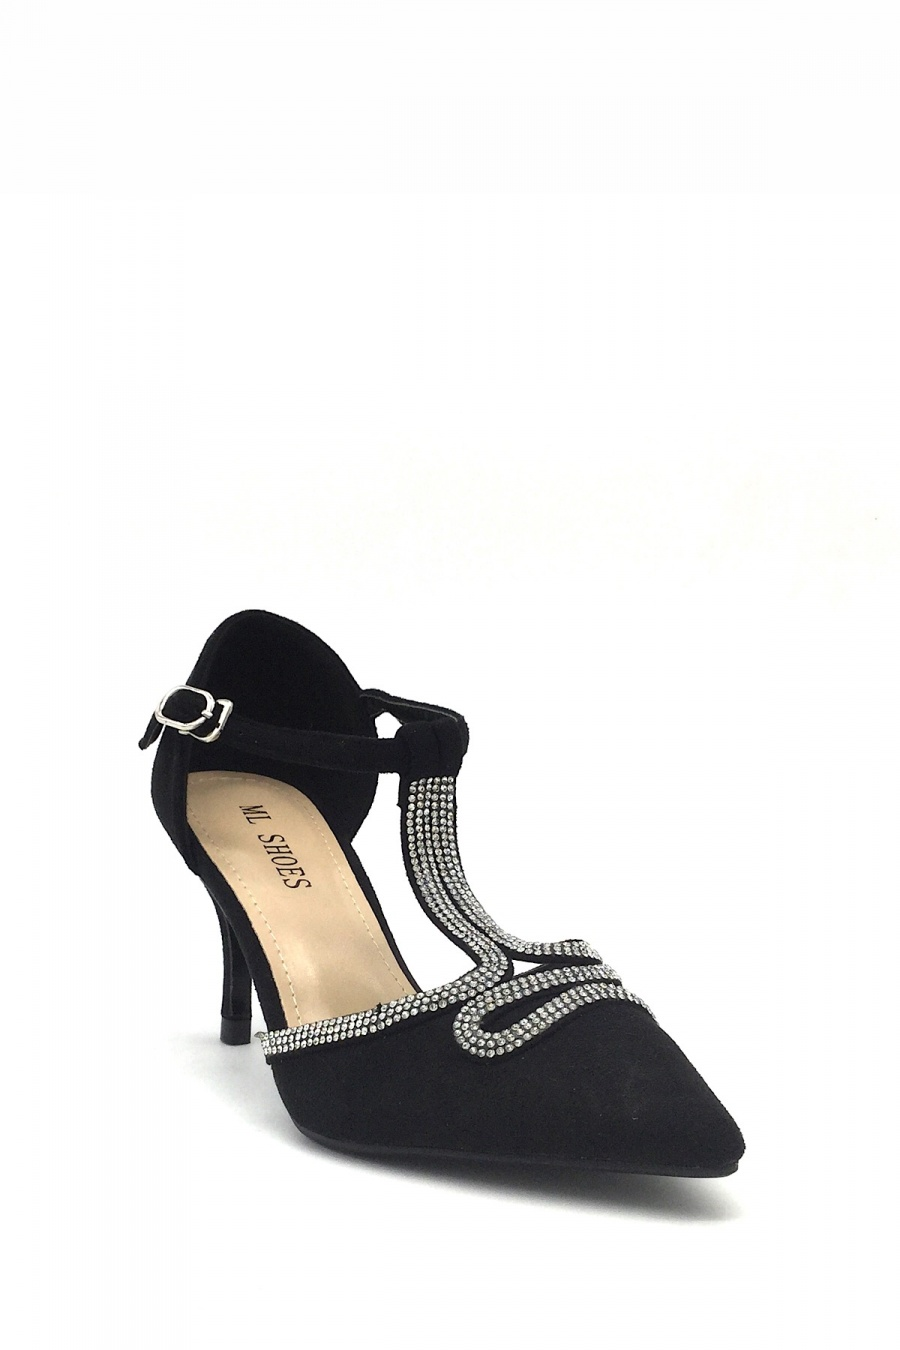 Escarpins Chaussures Noir ML SHOES FA-96 #c eFashion Paris